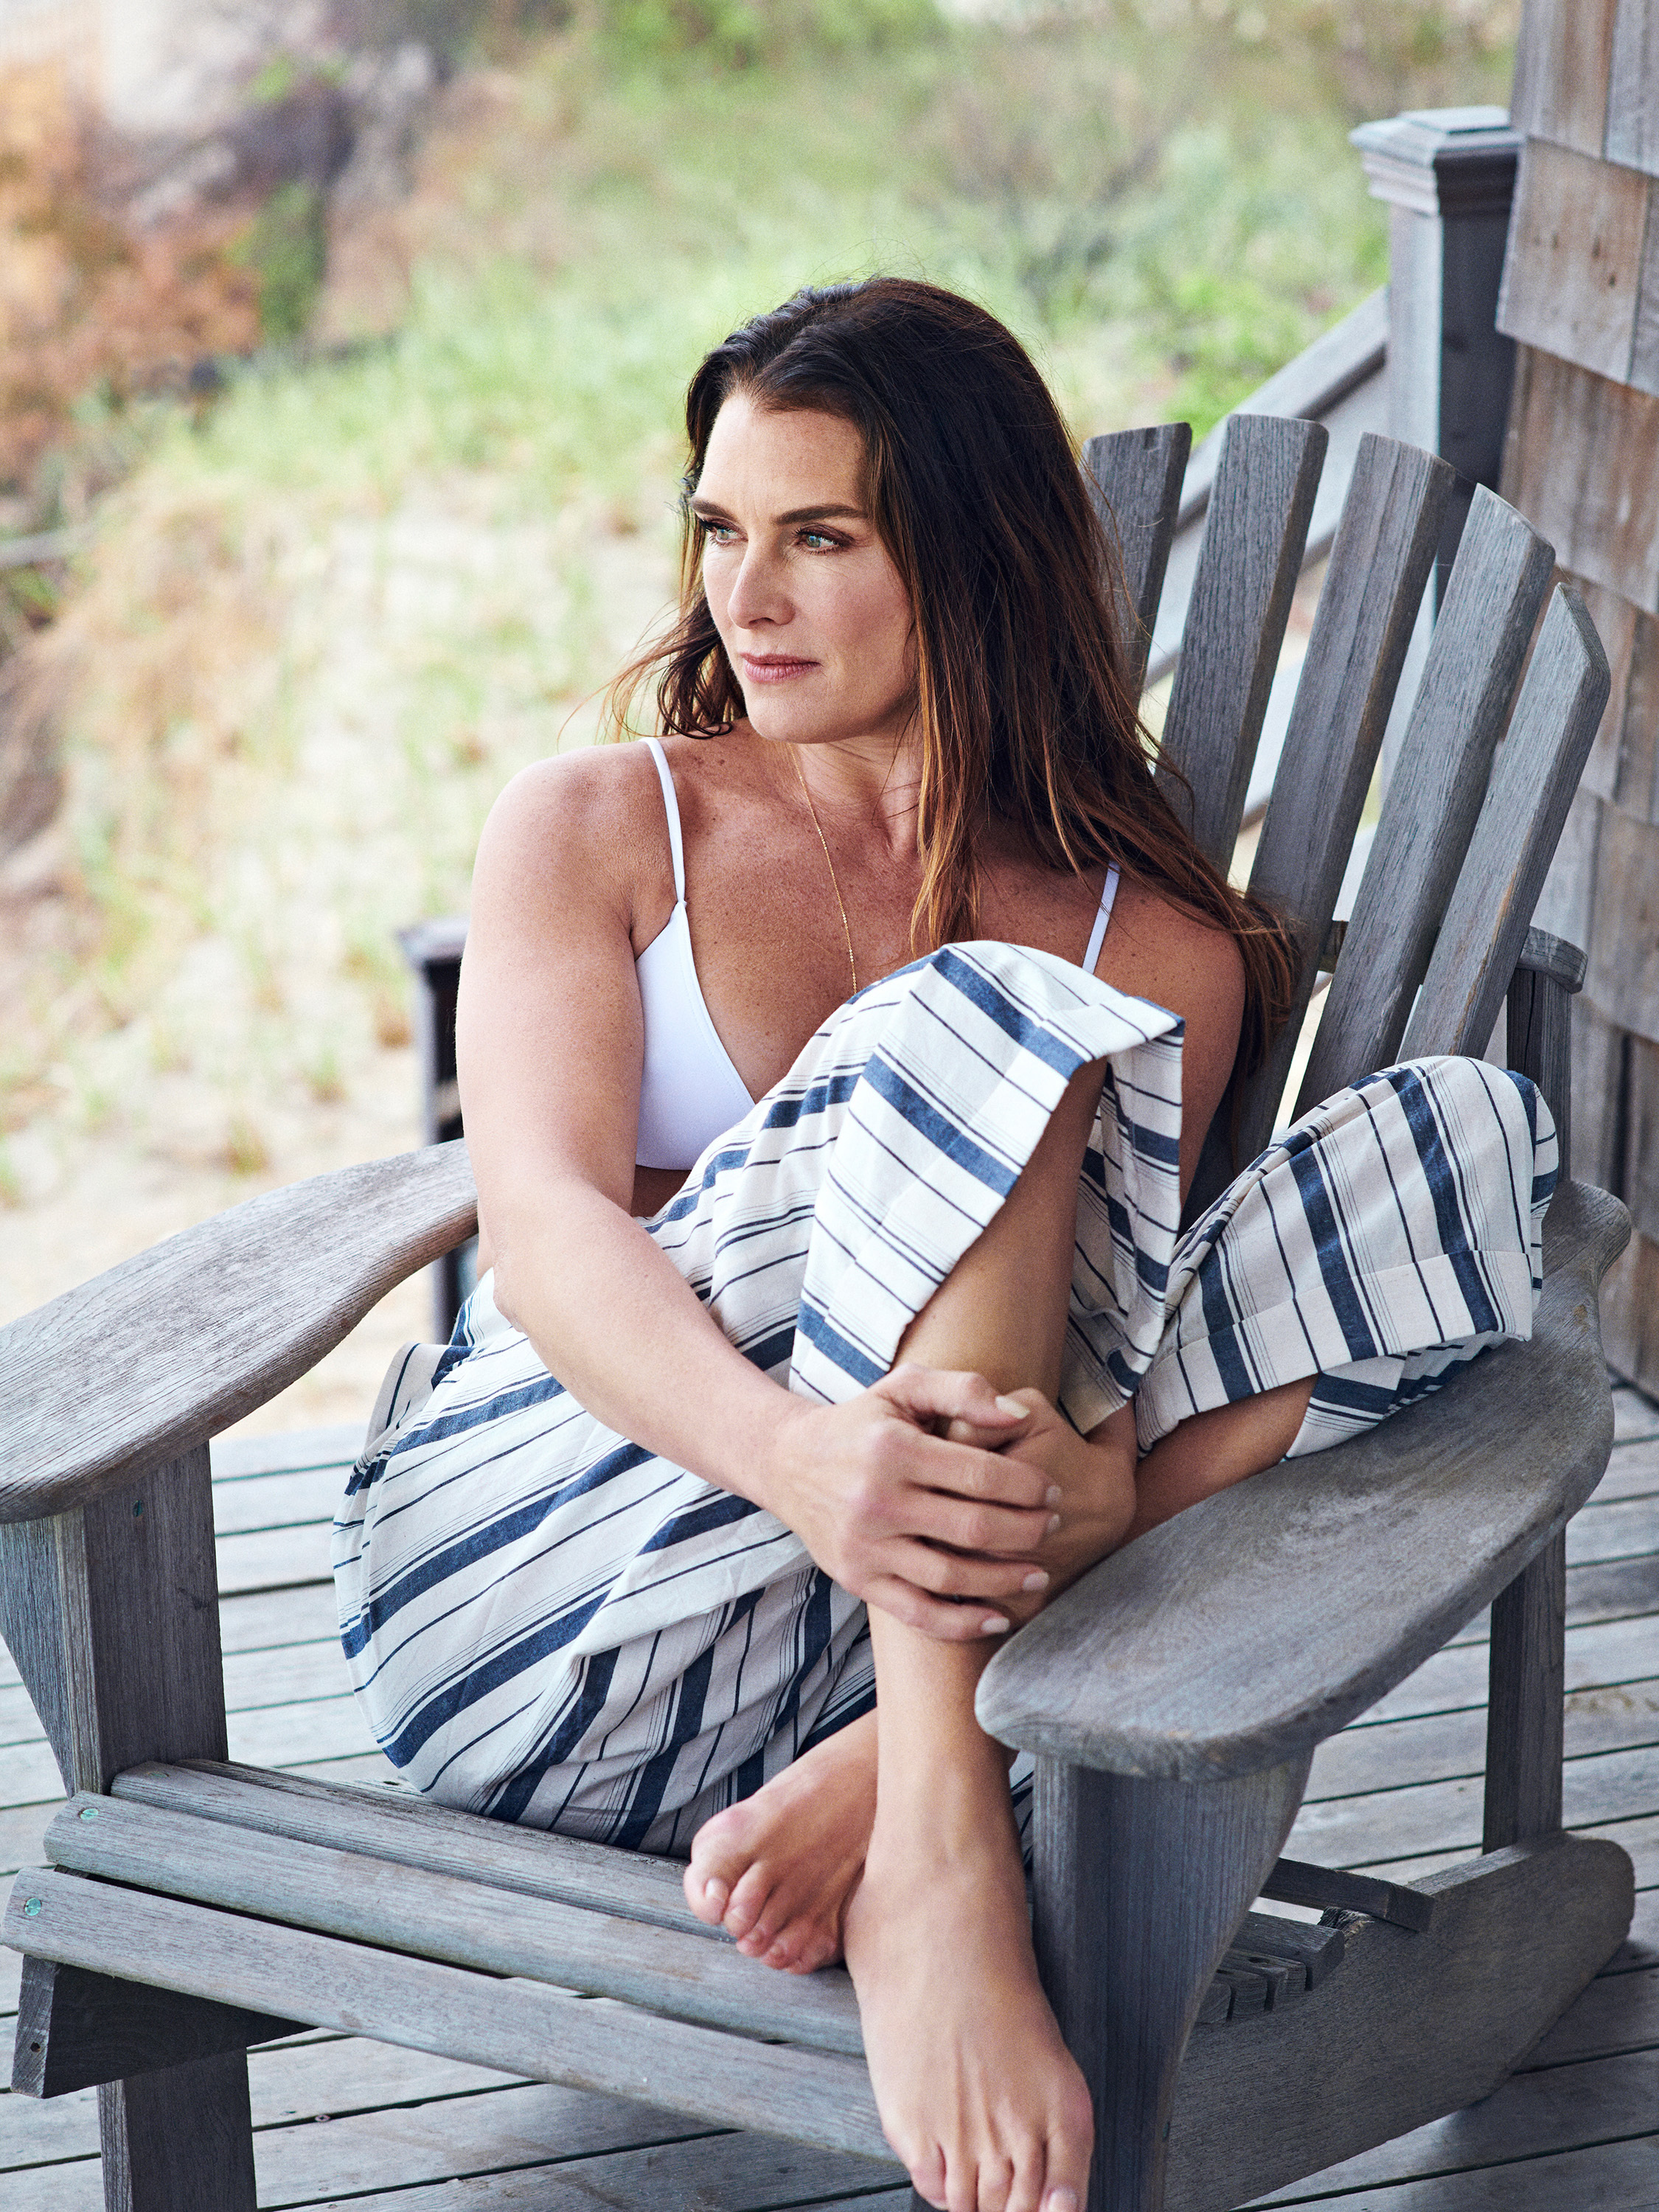 Feet Brooke Shields naked (16 foto and video), Ass, Bikini, Twitter, legs 2019